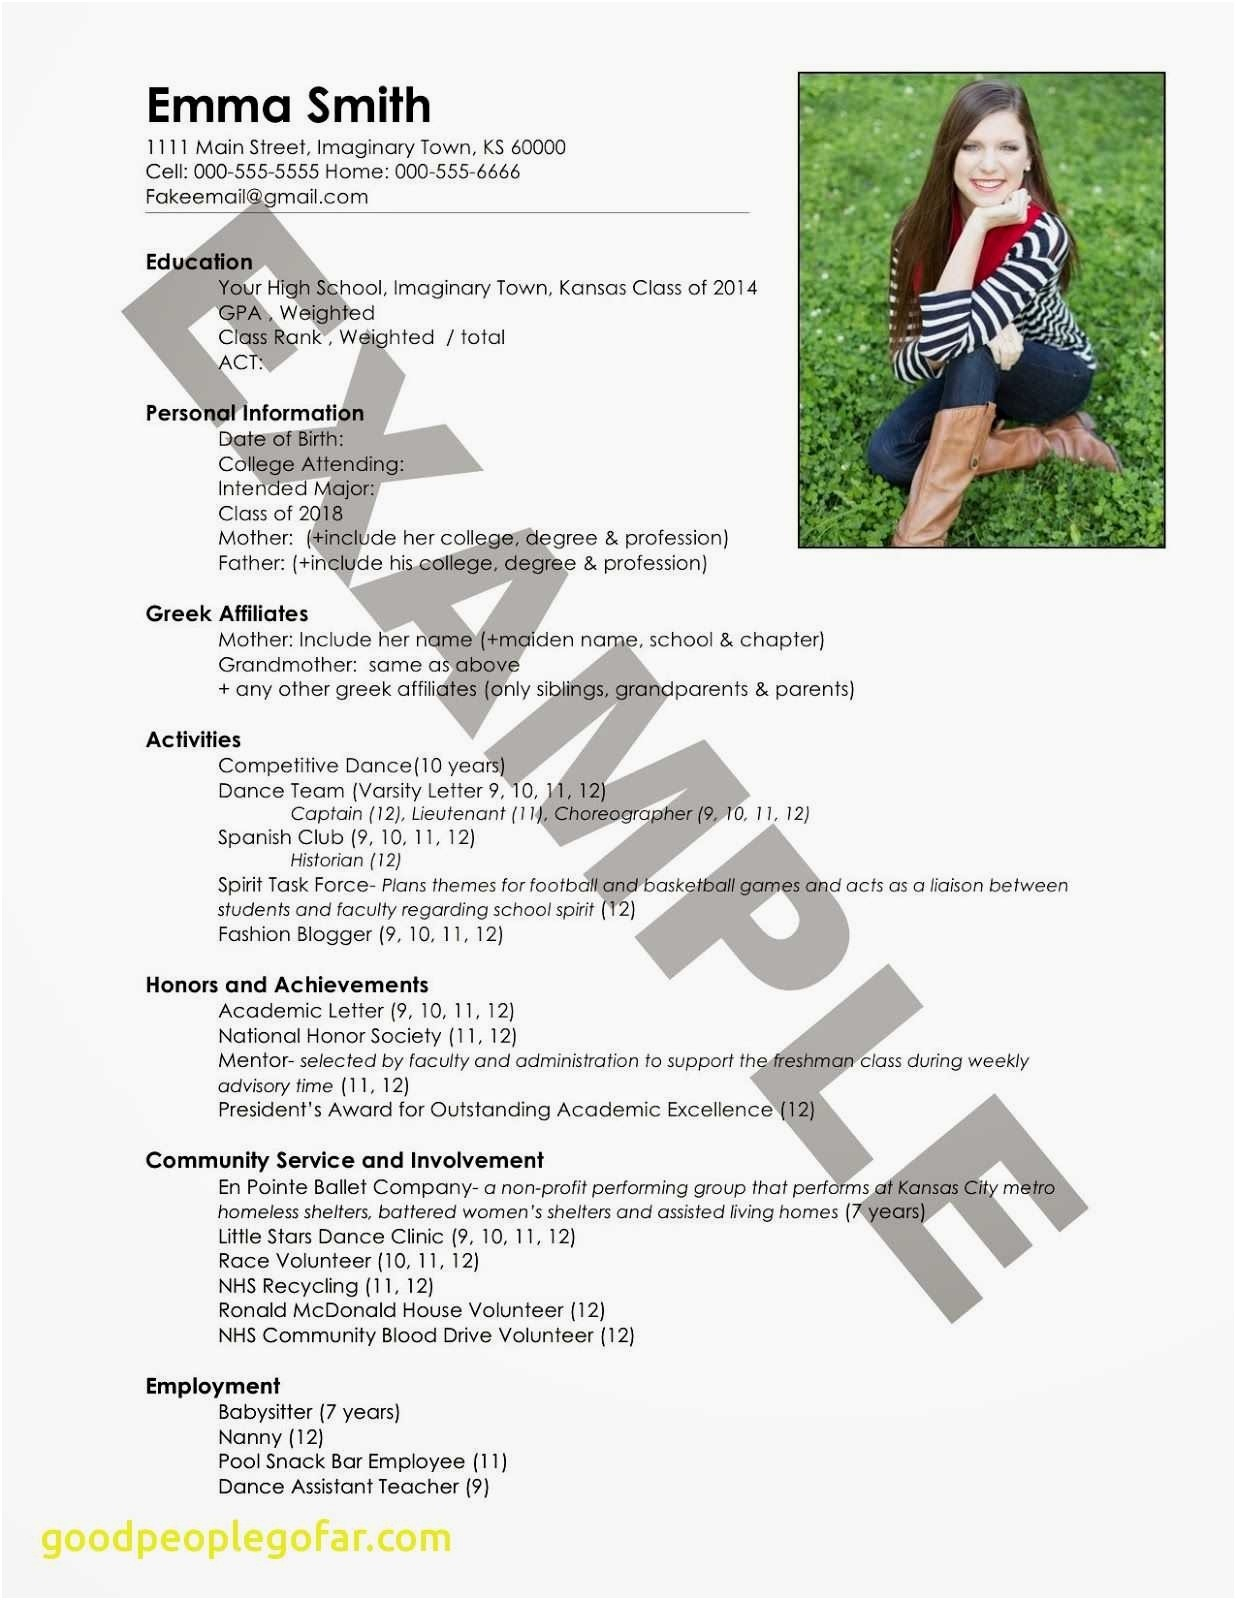 sorority rush resume template Collection-Good Things to Put A Resume New Lovely Entry Level Resume sorority Resume 0d Things 5-f